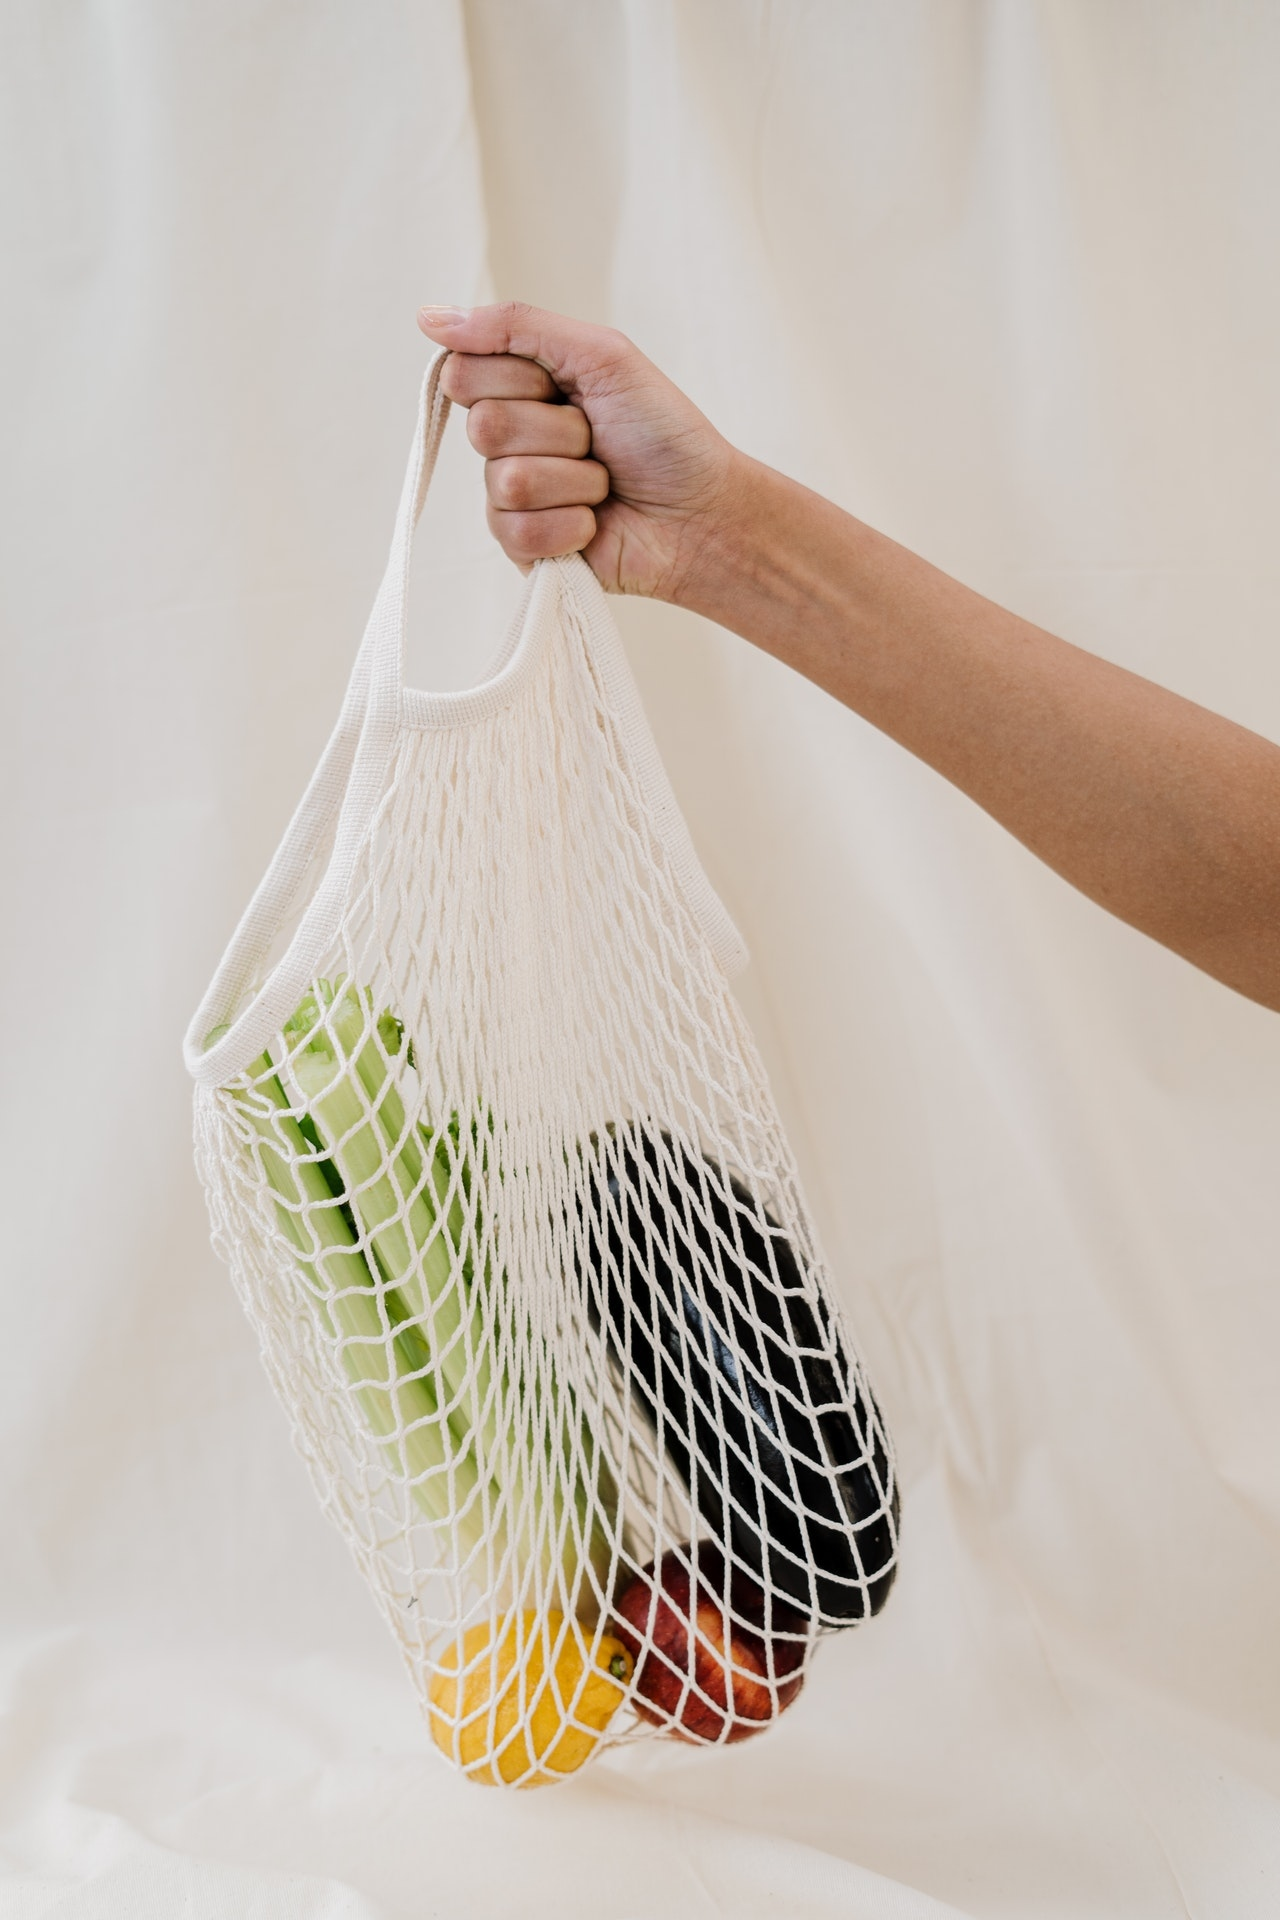 Net bag with vegetables